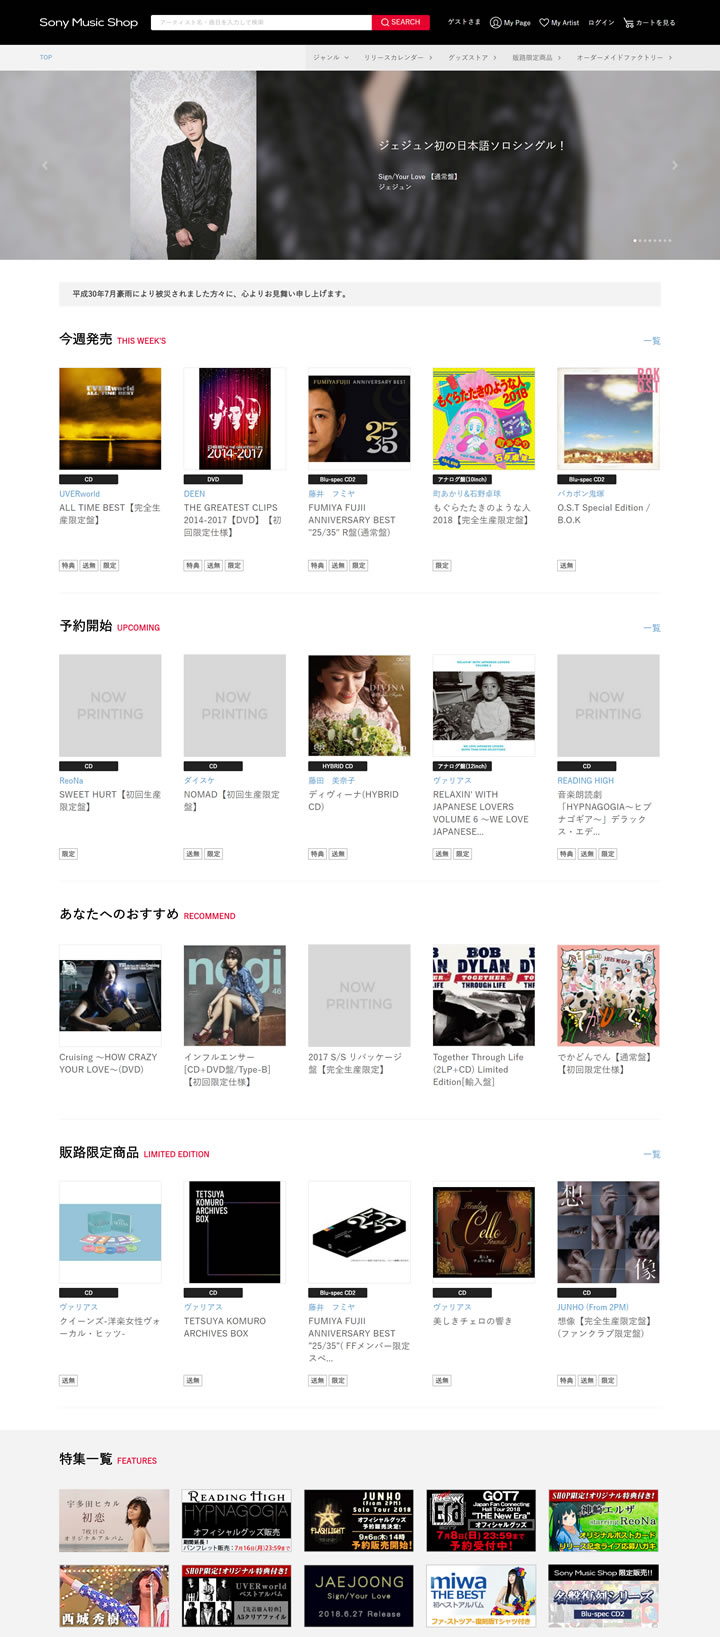 日本索尼音乐商店:Sony Music Shop